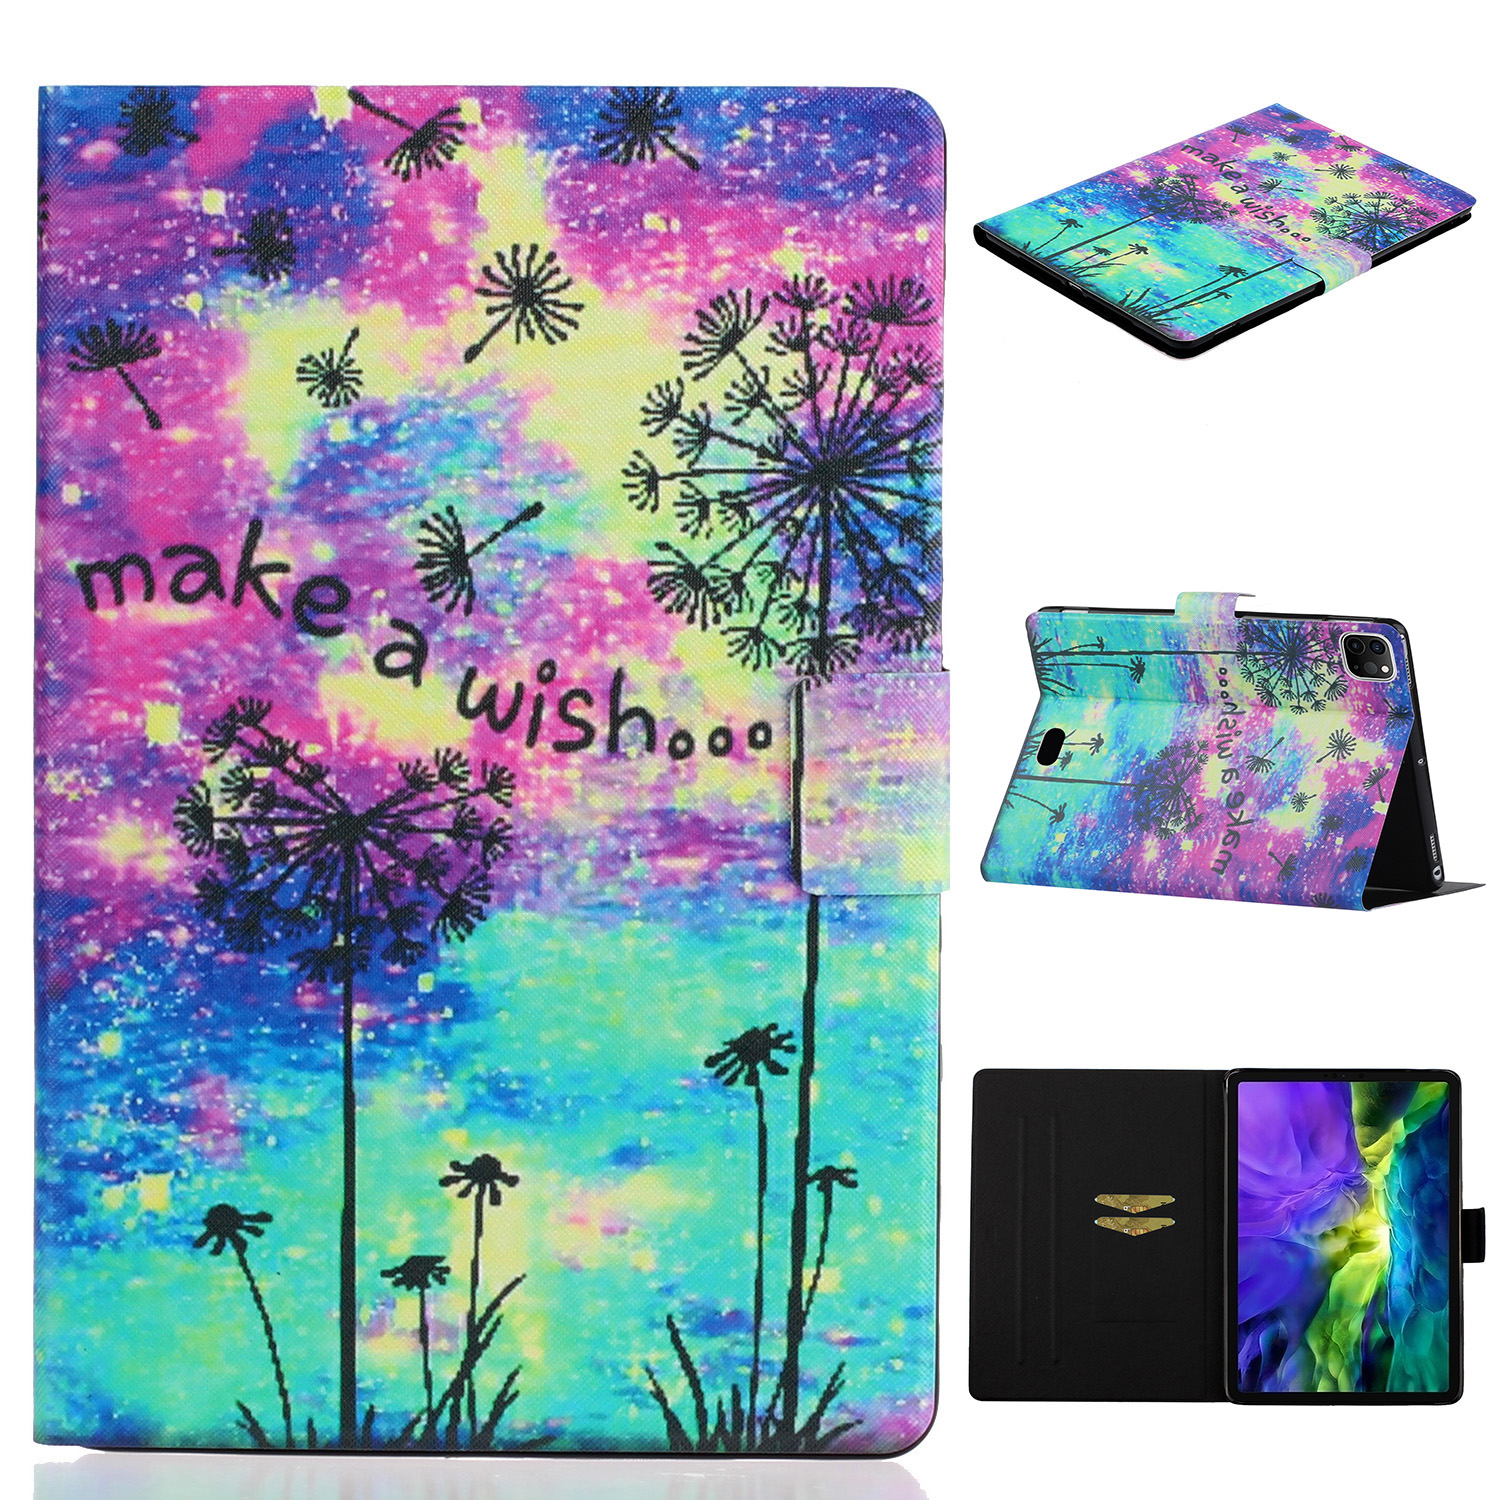 4 Green For iPad Pro 11 inch 2020 Case Cheap PU Leather Painted Smart Folio Case for iPad